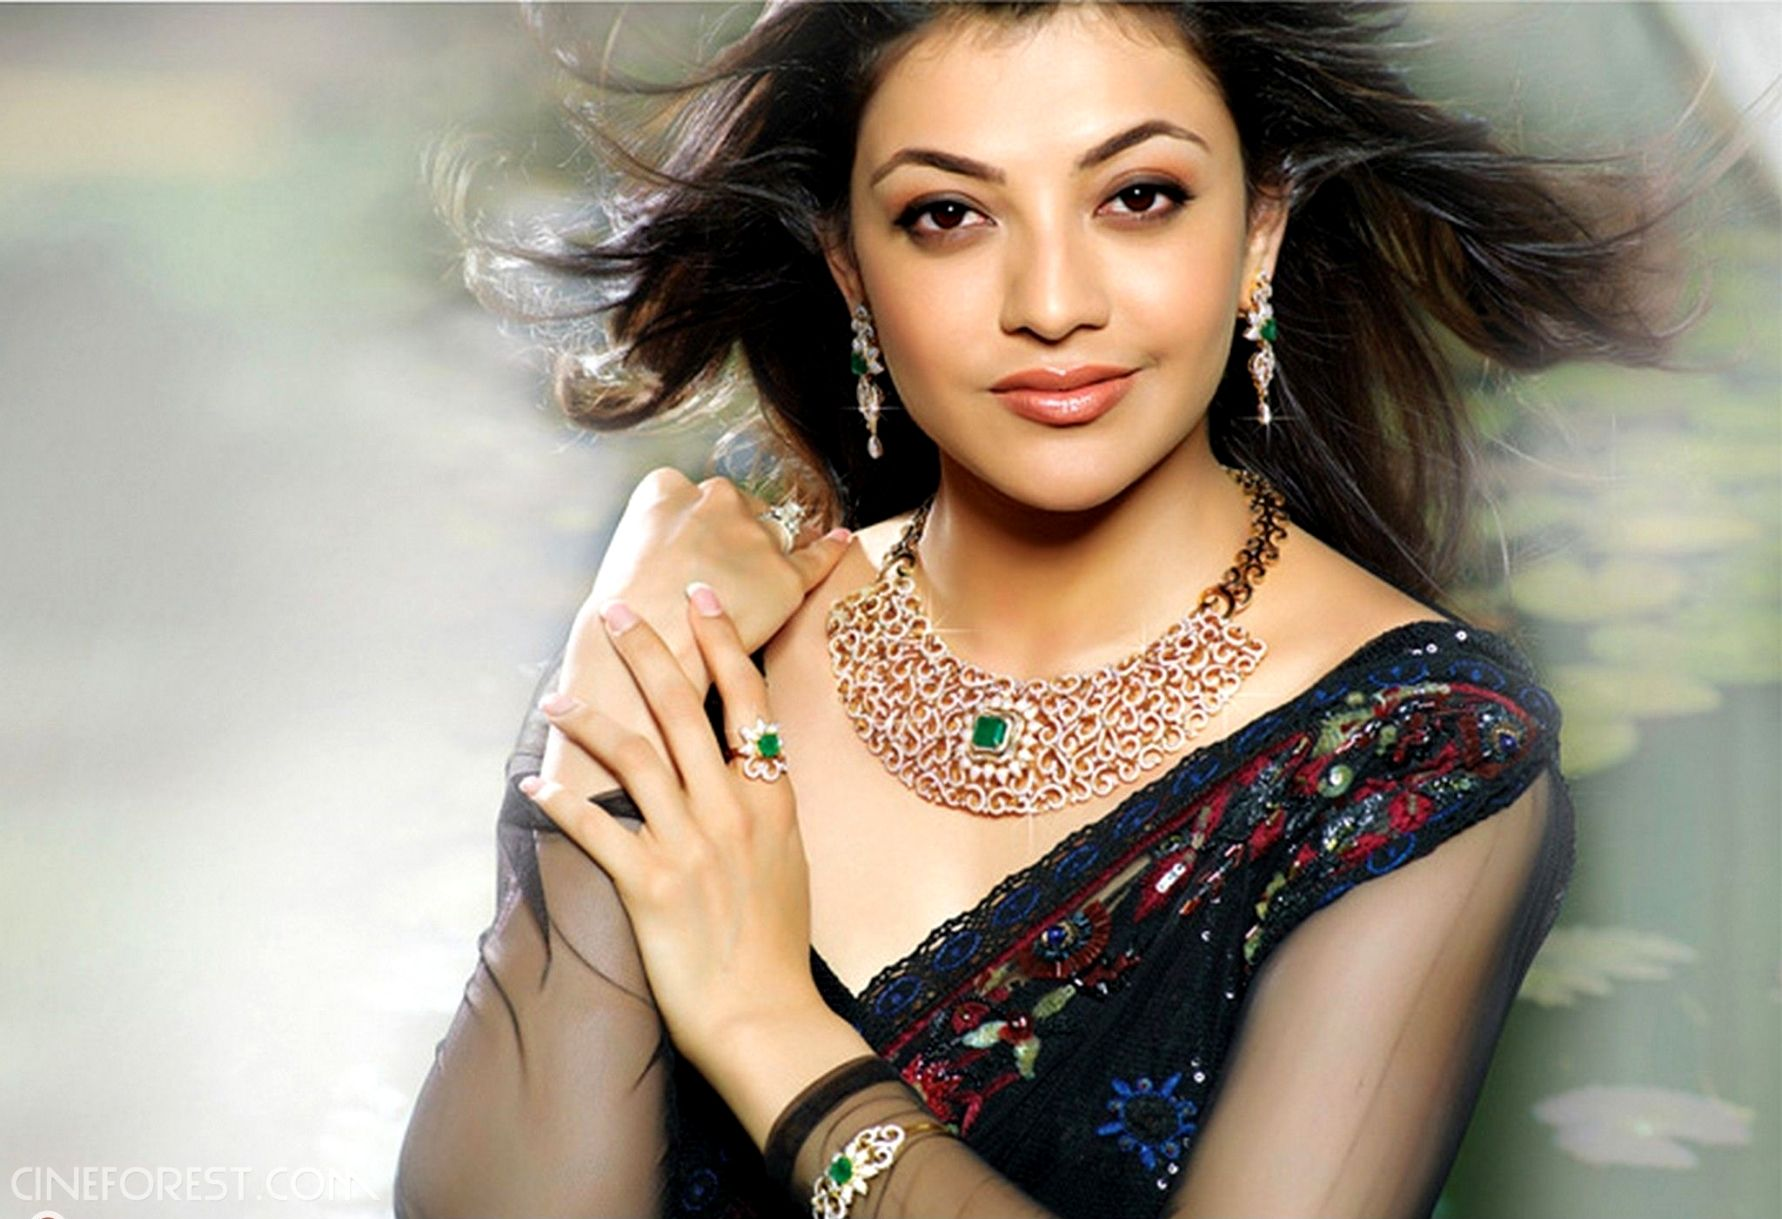 Top 10 Hottest South Indian Actresses Hd On Welcomenricom Welcomenri